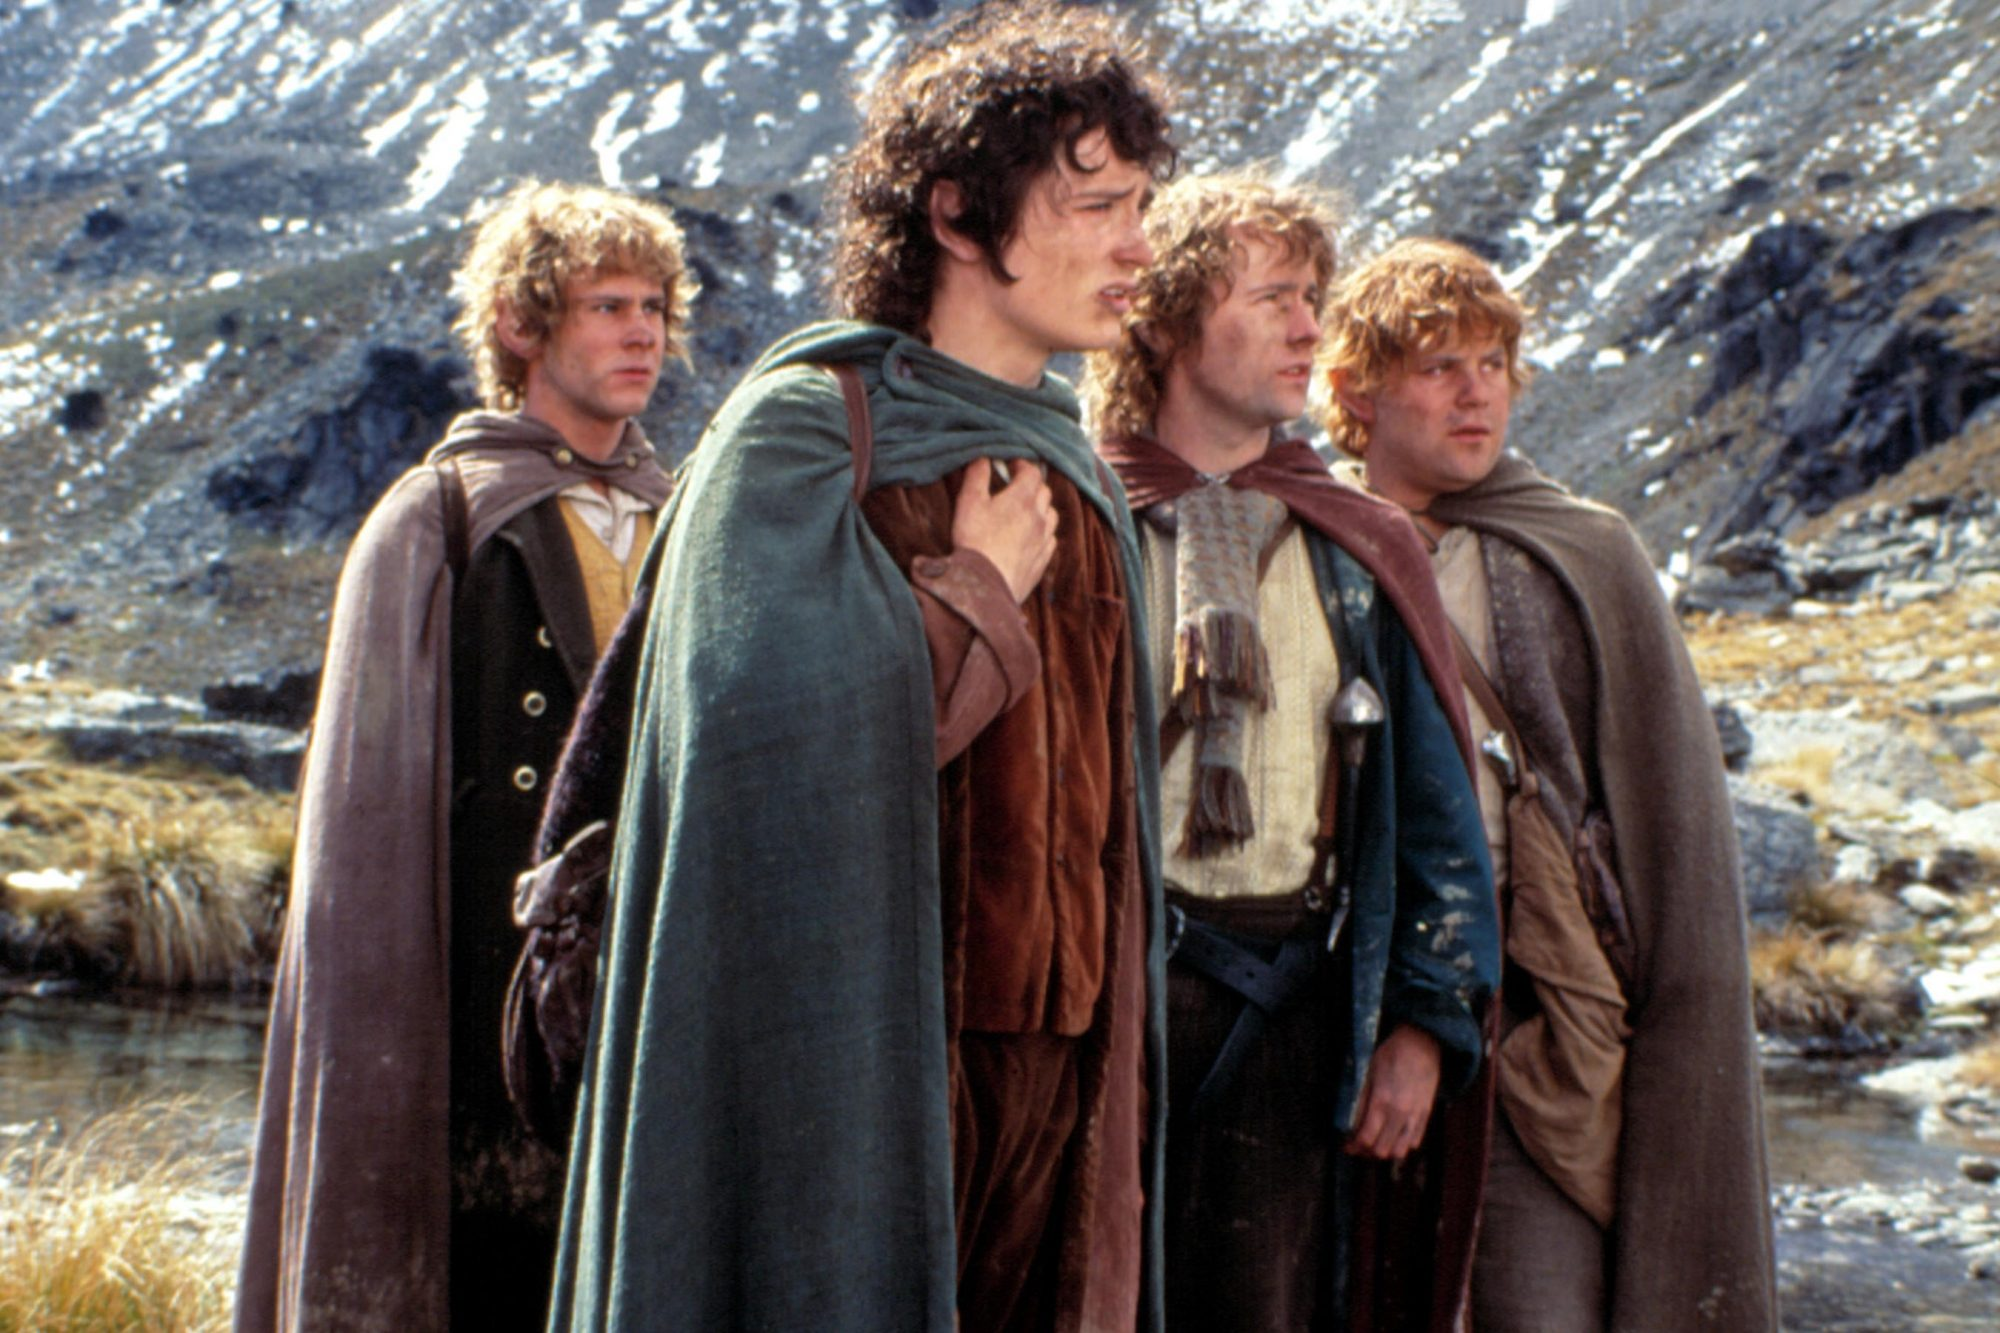 THE LORD OF THE RINGS: THE FELLOWSHIP OF THE RING,  Dominic Monaghan, Elijah Wood, Billy Boyd, Sean